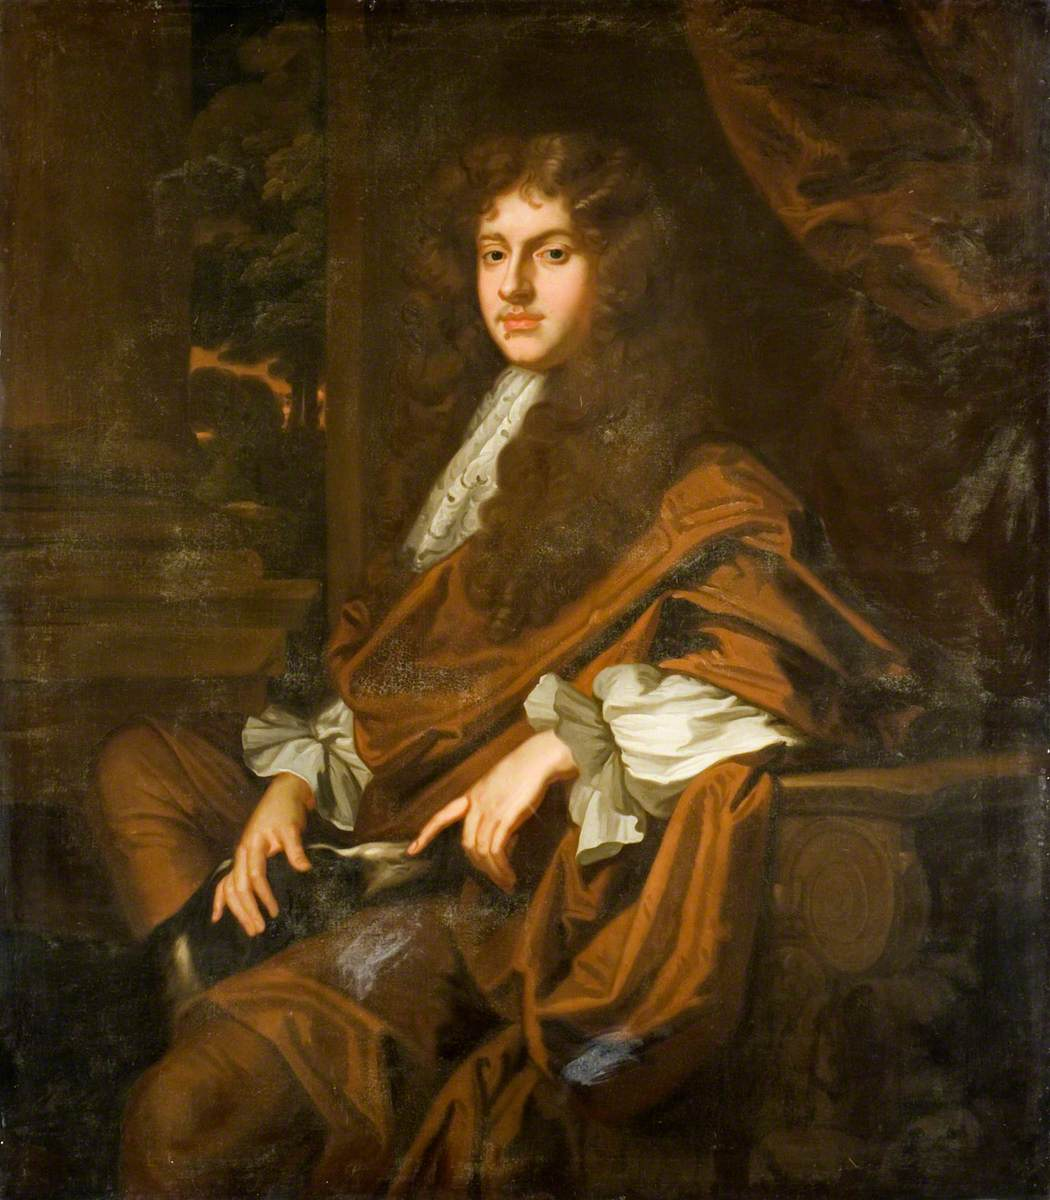 Portrait of a Gentleman in a Long Wig and a Brown Cloak, with a Dog